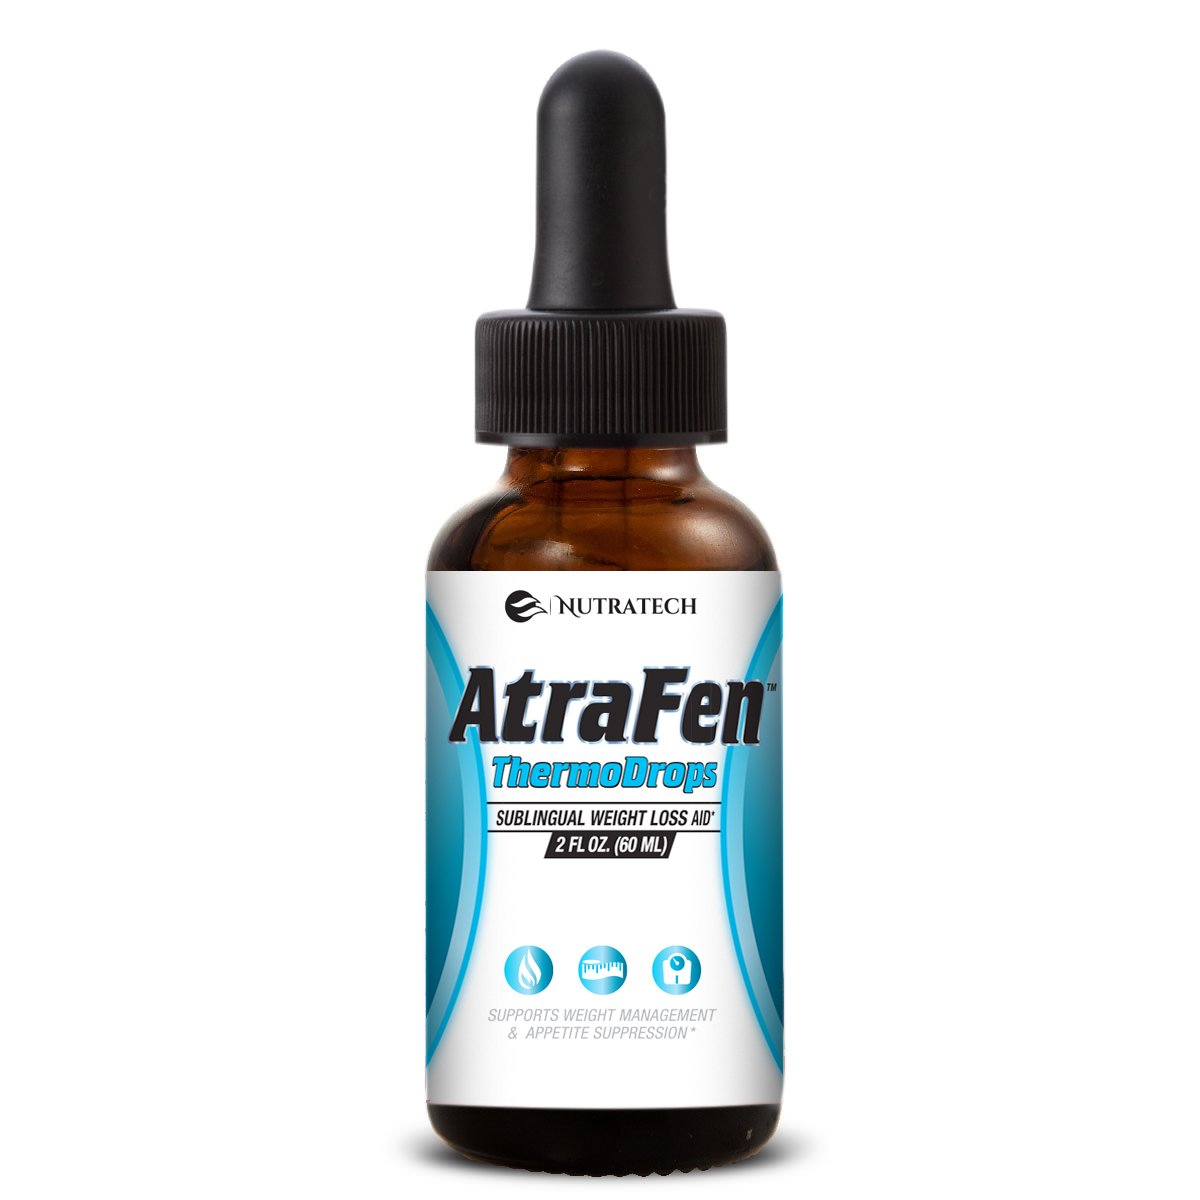 Nutratech Atrafen Thermodrops - Powerful Sublingual Diet Drops and Fat Burner Provides Fast Acting Appetite Suppression and Weight Loss. by Atrafen